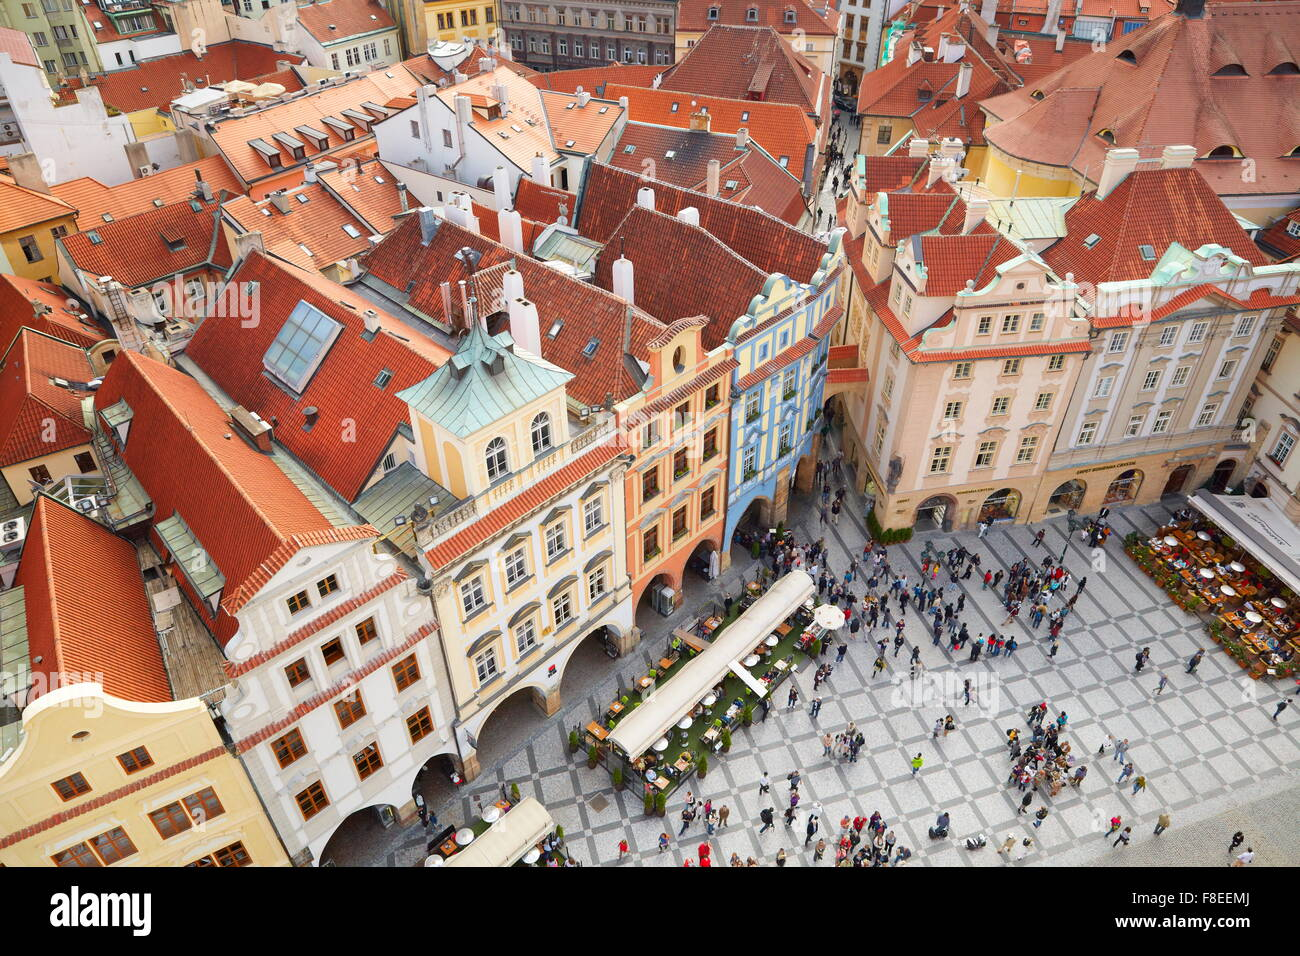 Ariel view of the Old Town Square, Prague, Czech Republic, UNESCO - Stock Image